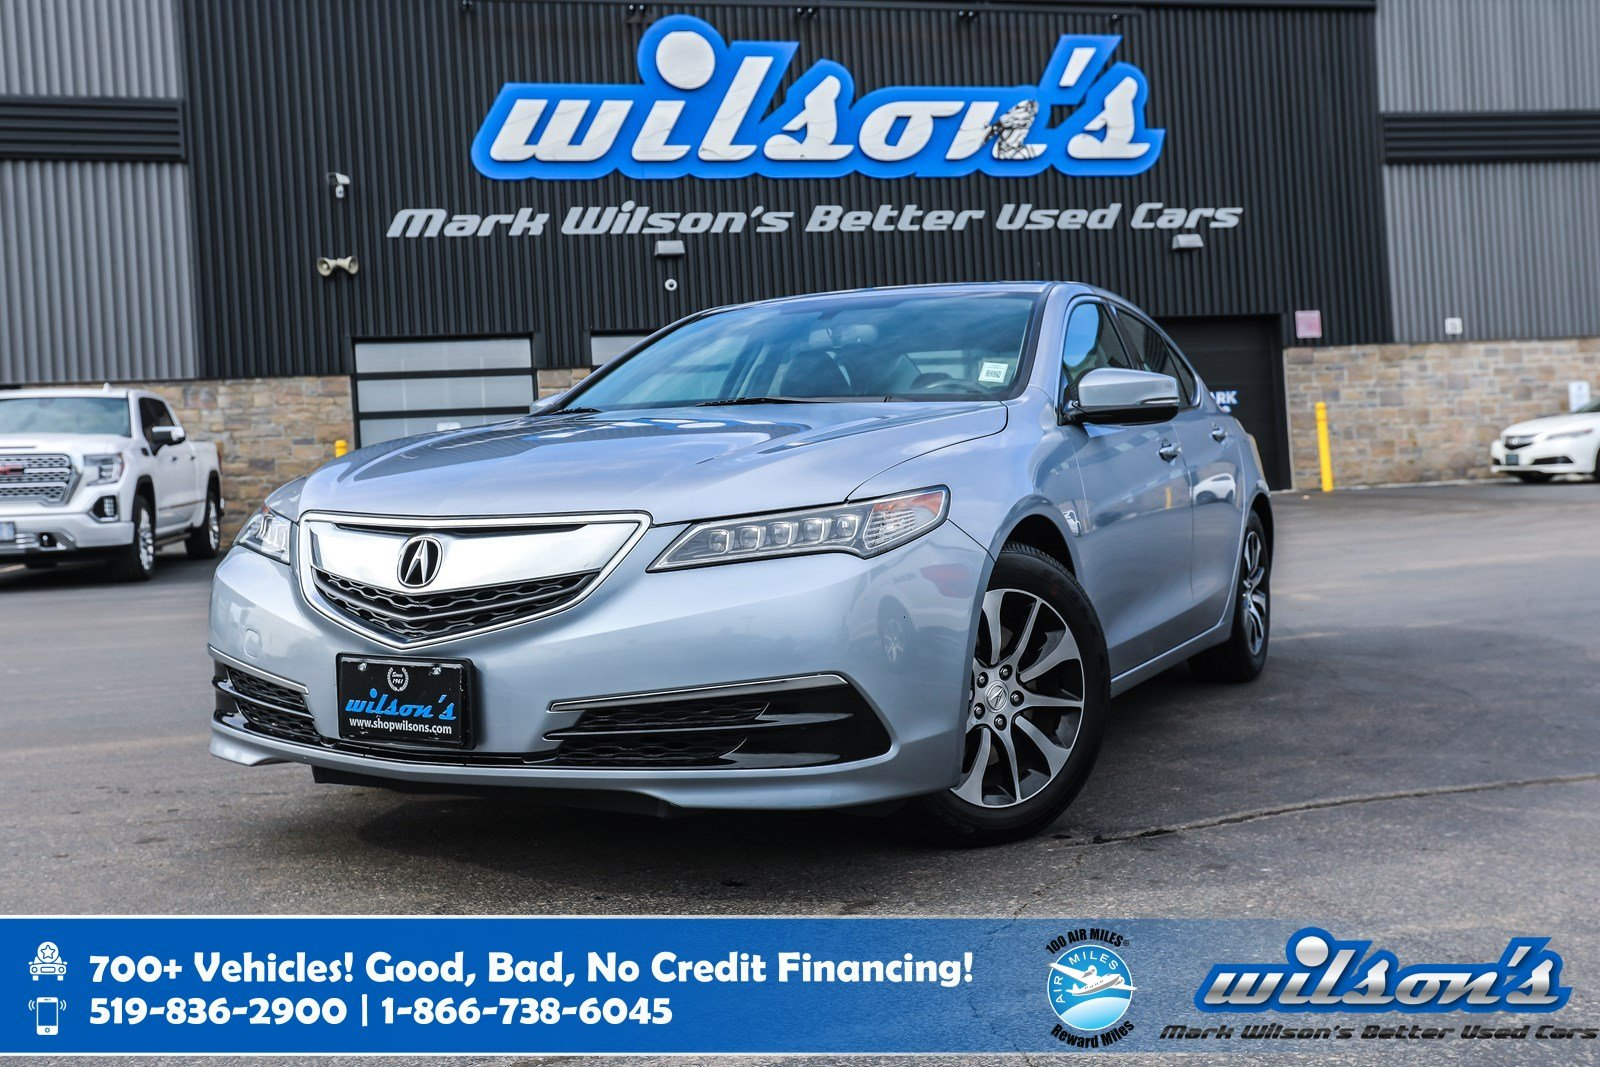 Certified Pre-Owned 2015 Acura TLX Leather, Sunroof, Rear Camera, Bluetooth, Heated + Power + Memory Seats, Alloy Wheels and more!